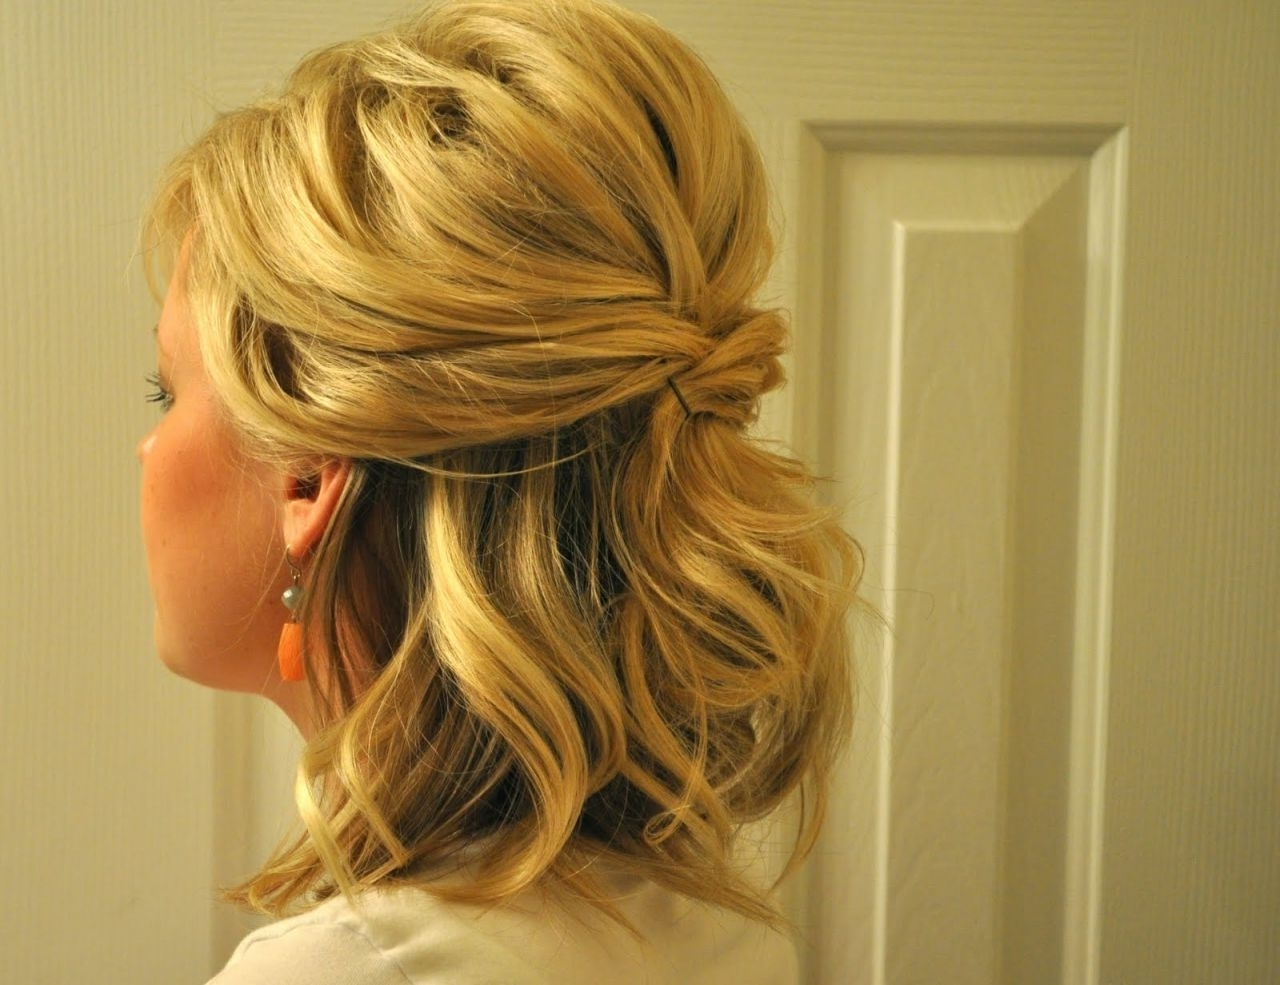 Hairstyles For Curly Hair Half Up Half Down Prom Hairstyles For Pertaining To Most Current Wedding Hairstyles For Medium Length With Blonde Hair (View 10 of 15)